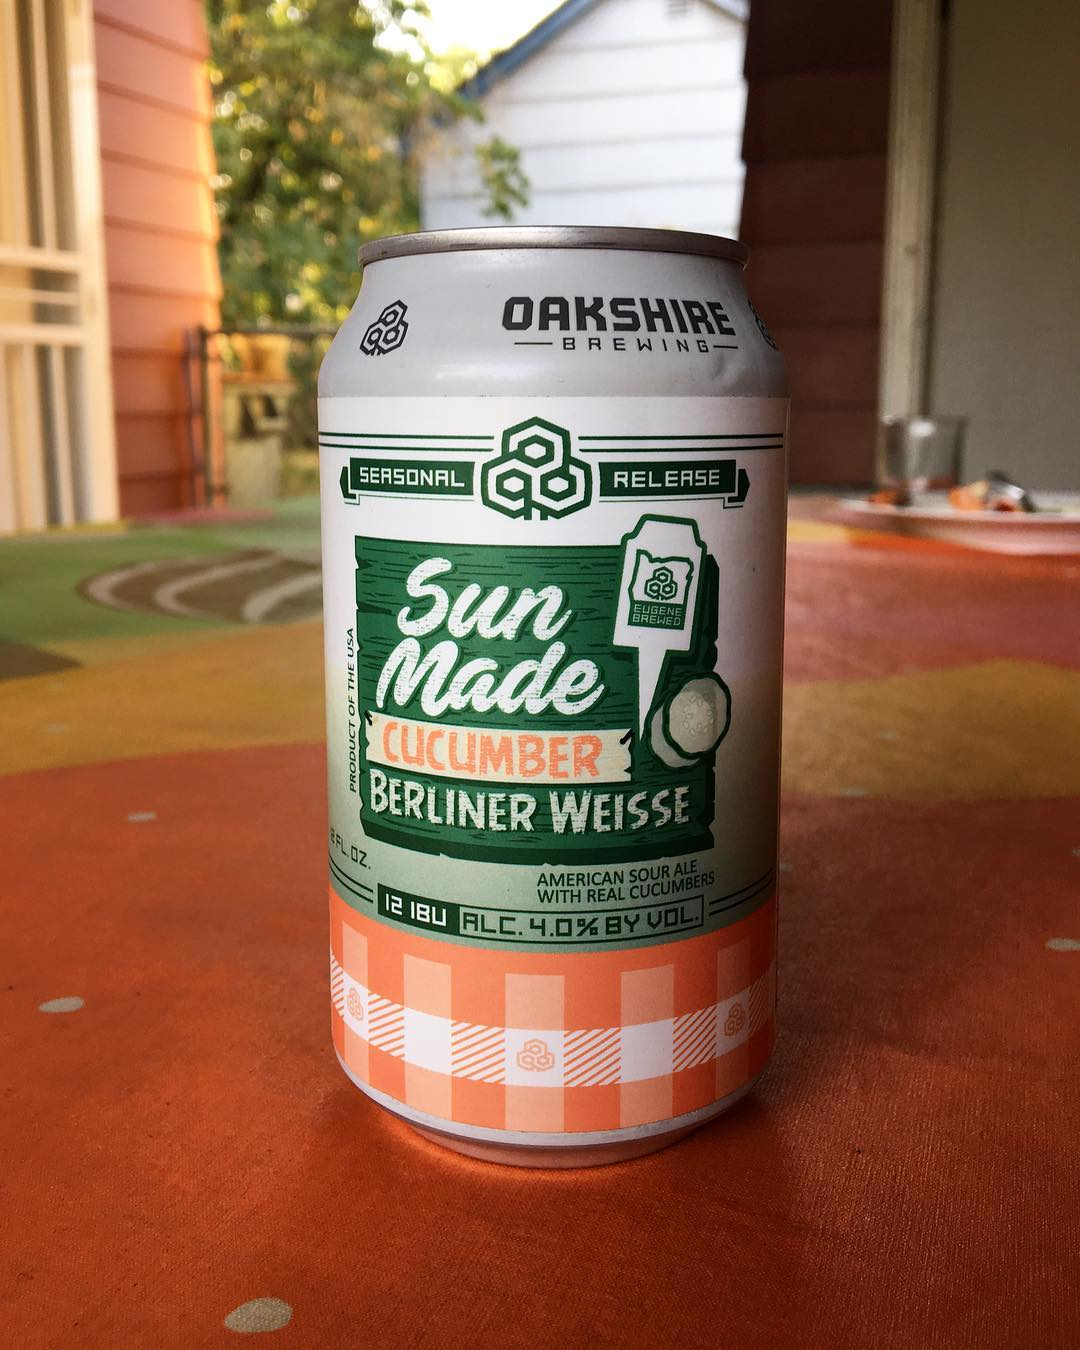 What are you drinking to quench your thirst on these hot days? This cucumber berliner weisse from @oakbrew is hitting the spot. Thanks to @matthallartpdx for the recommendation! 🙌🏼 #beerme #craftbeer #oregonbeer #oakshirebrewing #craftnotcrap #instabeer #beer #mybeeryear #beerstagram